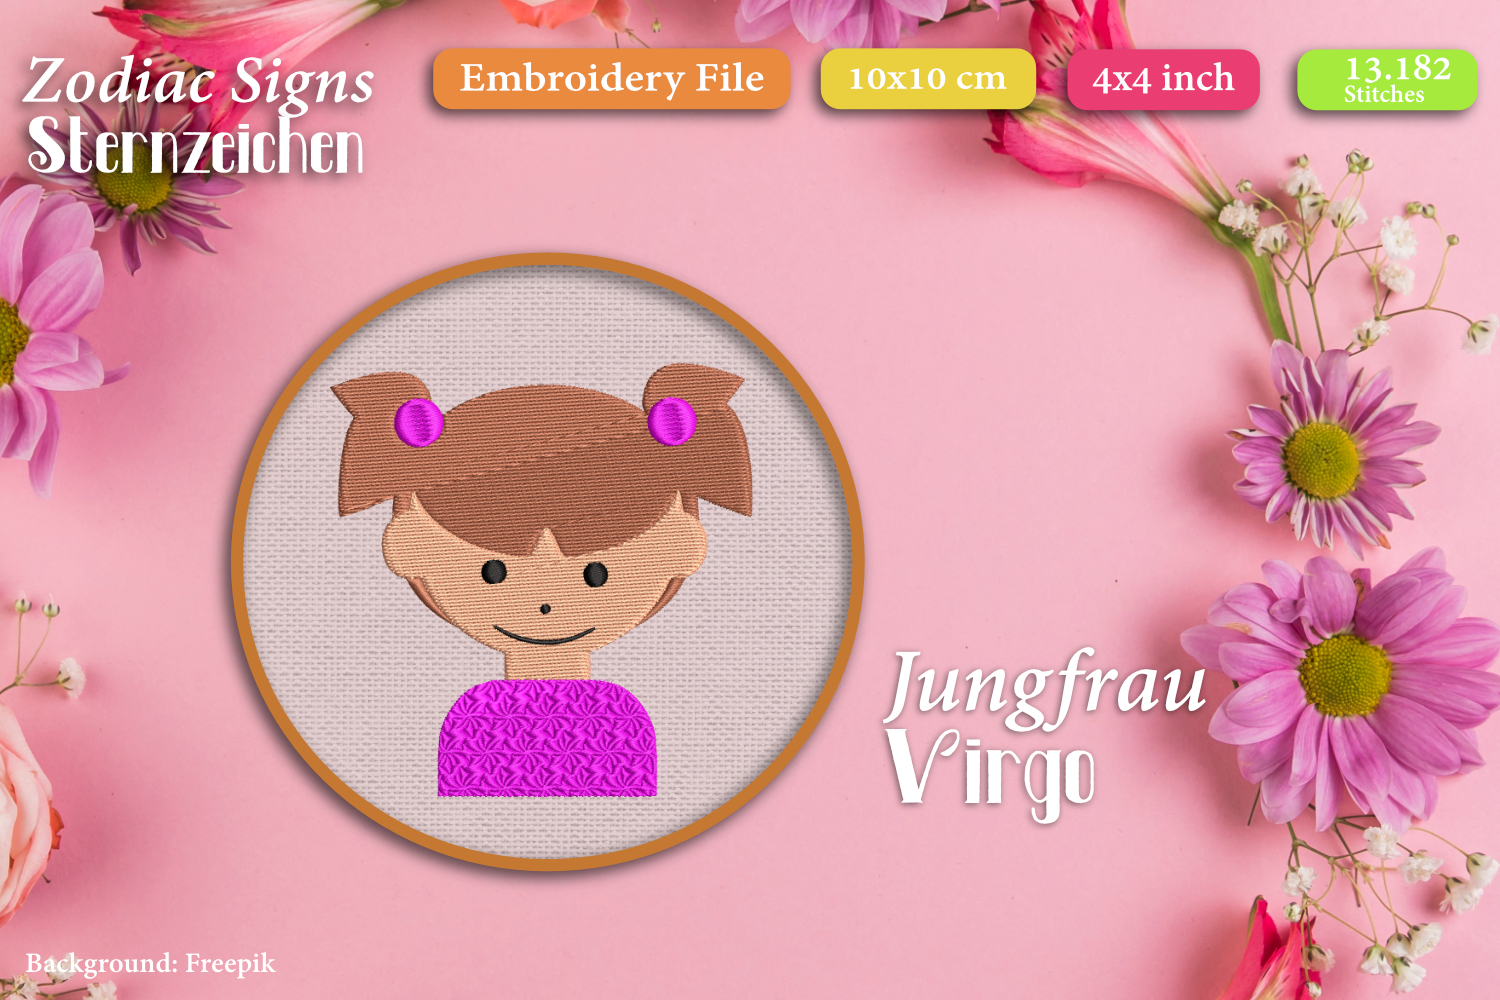 Zodiac signs - Embroidery Files - Bundle example image 10